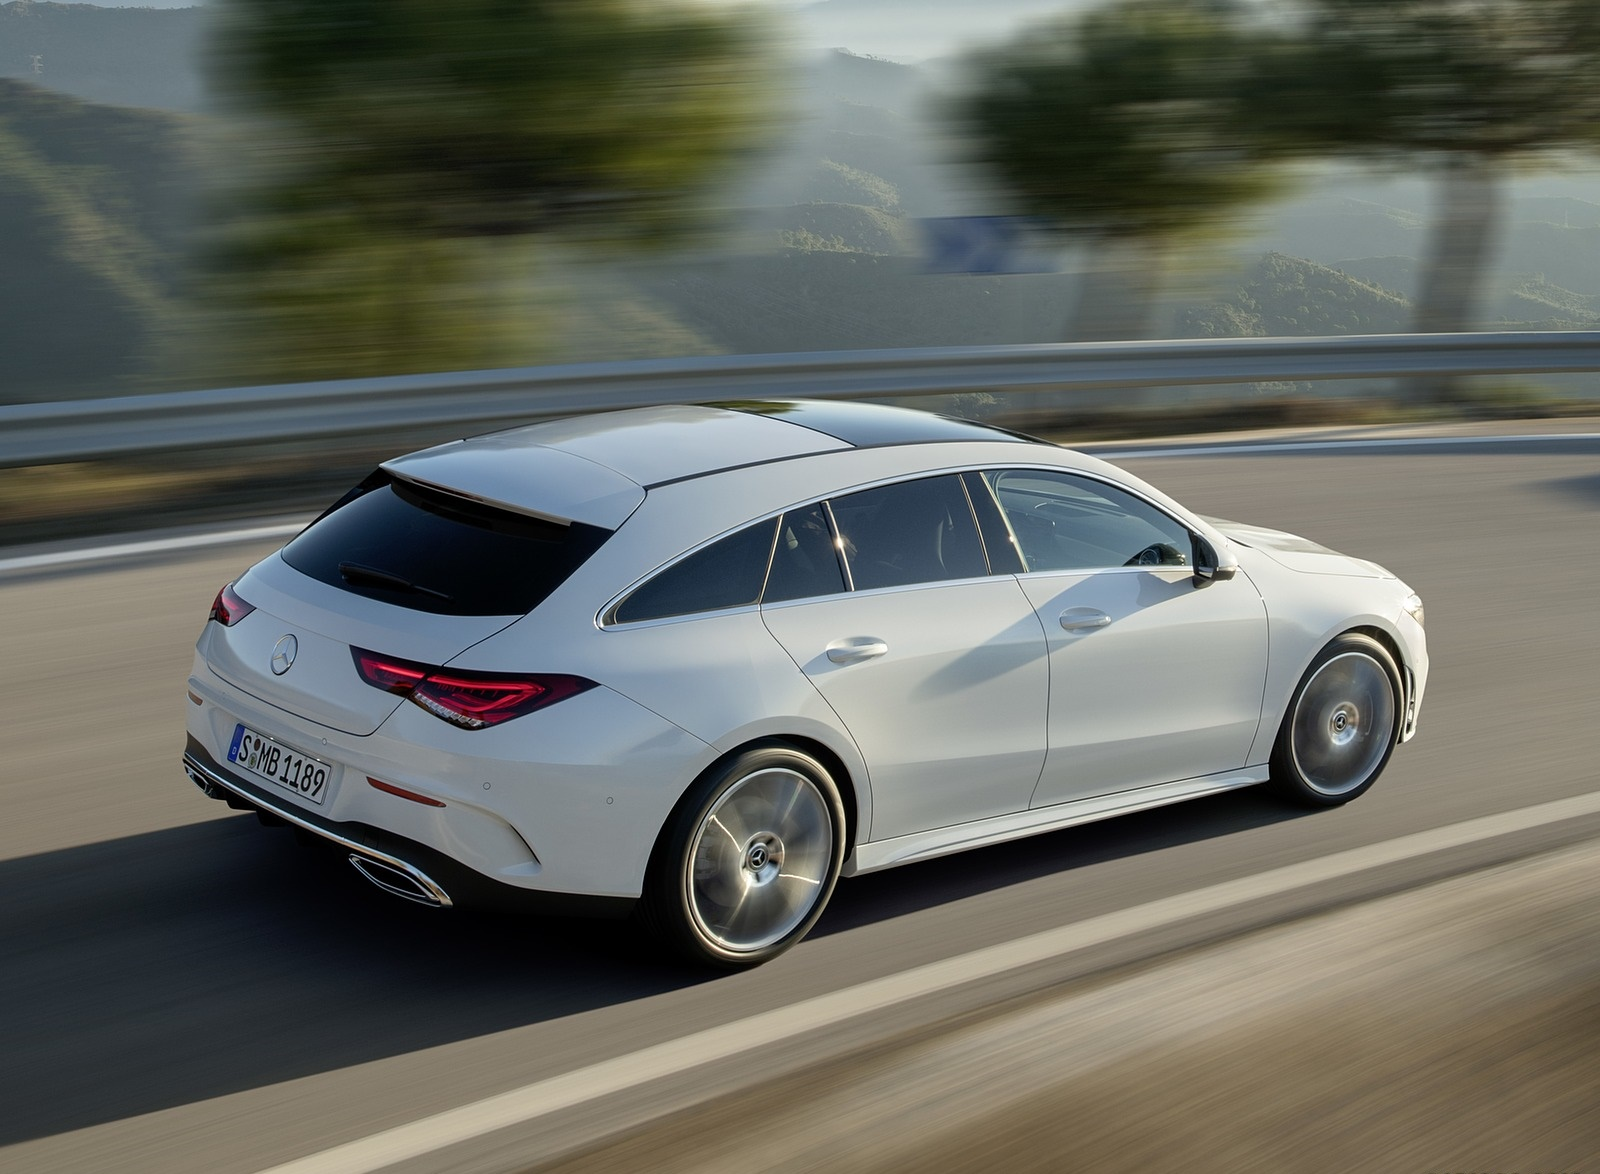 2020 Mercedes-Benz CLA Shooting Brake AMG-Line (Color: Digital White) Rear Three-Quarter Wallpaper (7)